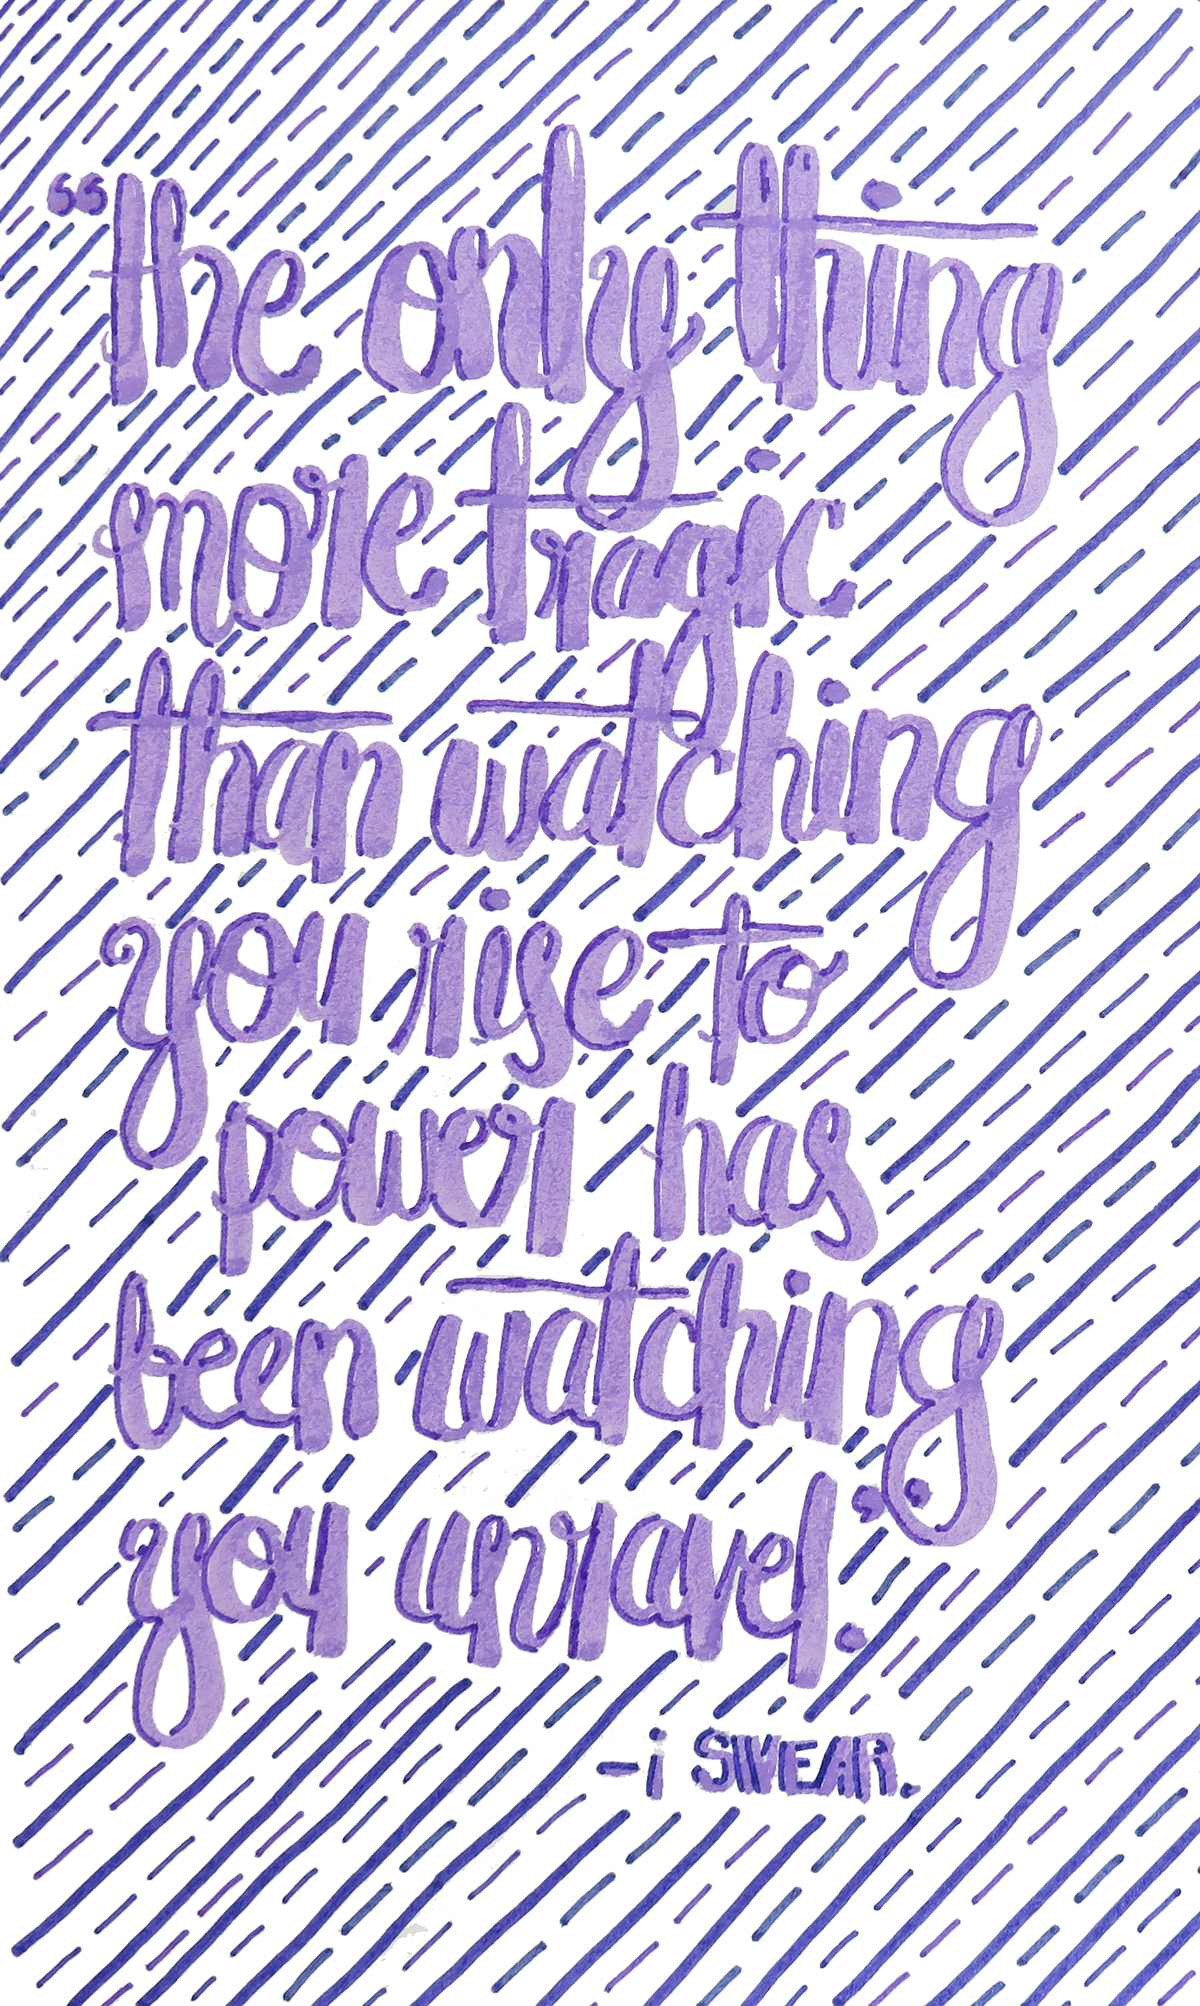 book quotes from i swear on behance, Home decor